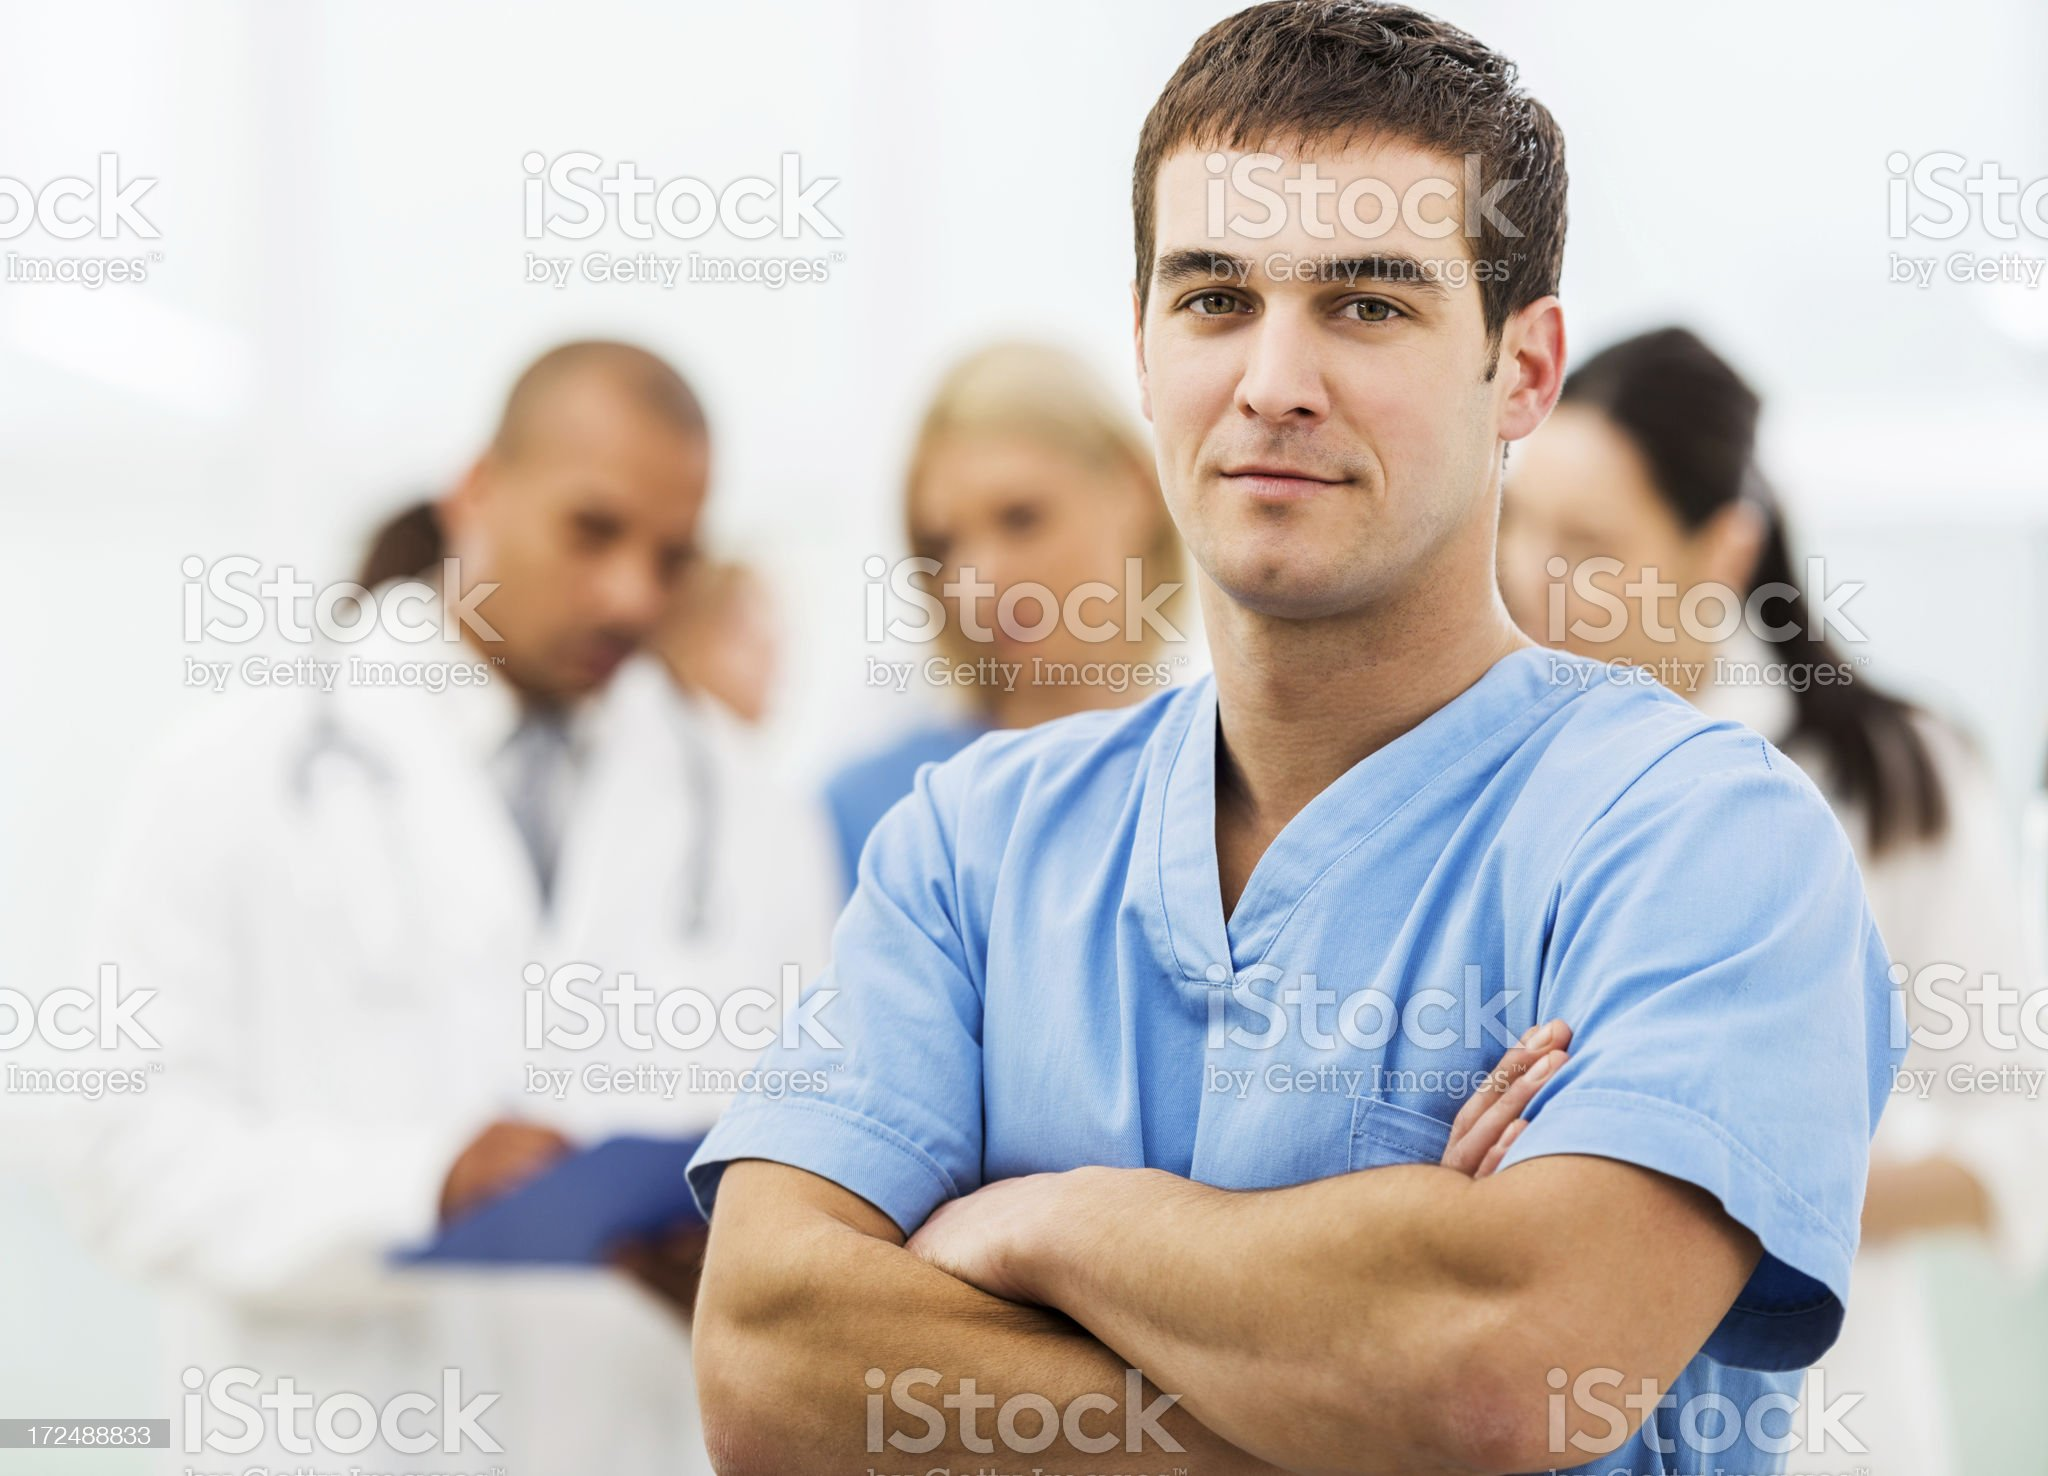 Male nurse with team of doctors in the background. royalty-free stock photo